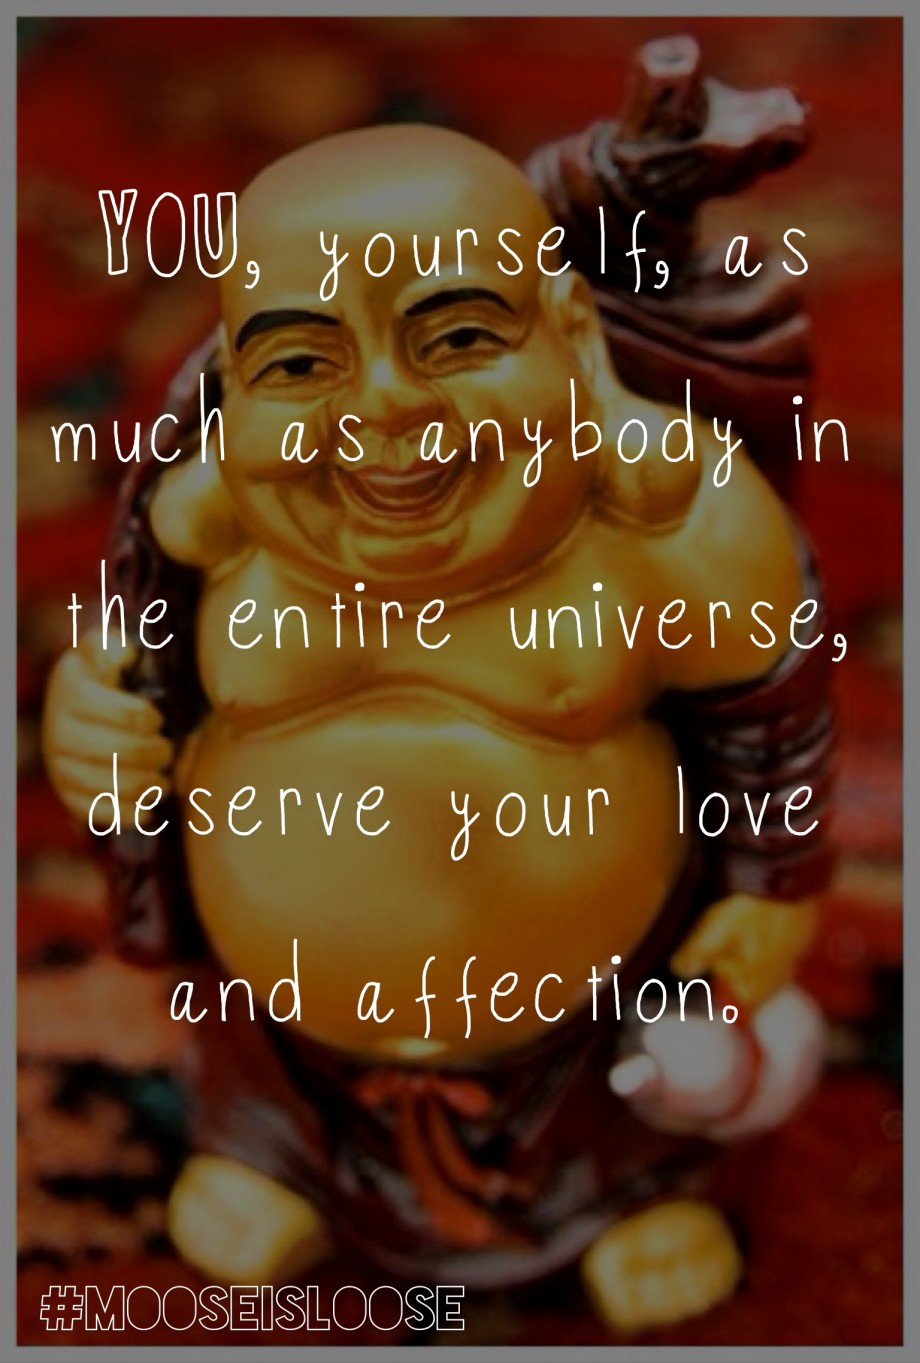 Buddhist Quotes On Love Best 10 Awesome Buddha Quotes That Will Inspire And Motivate You